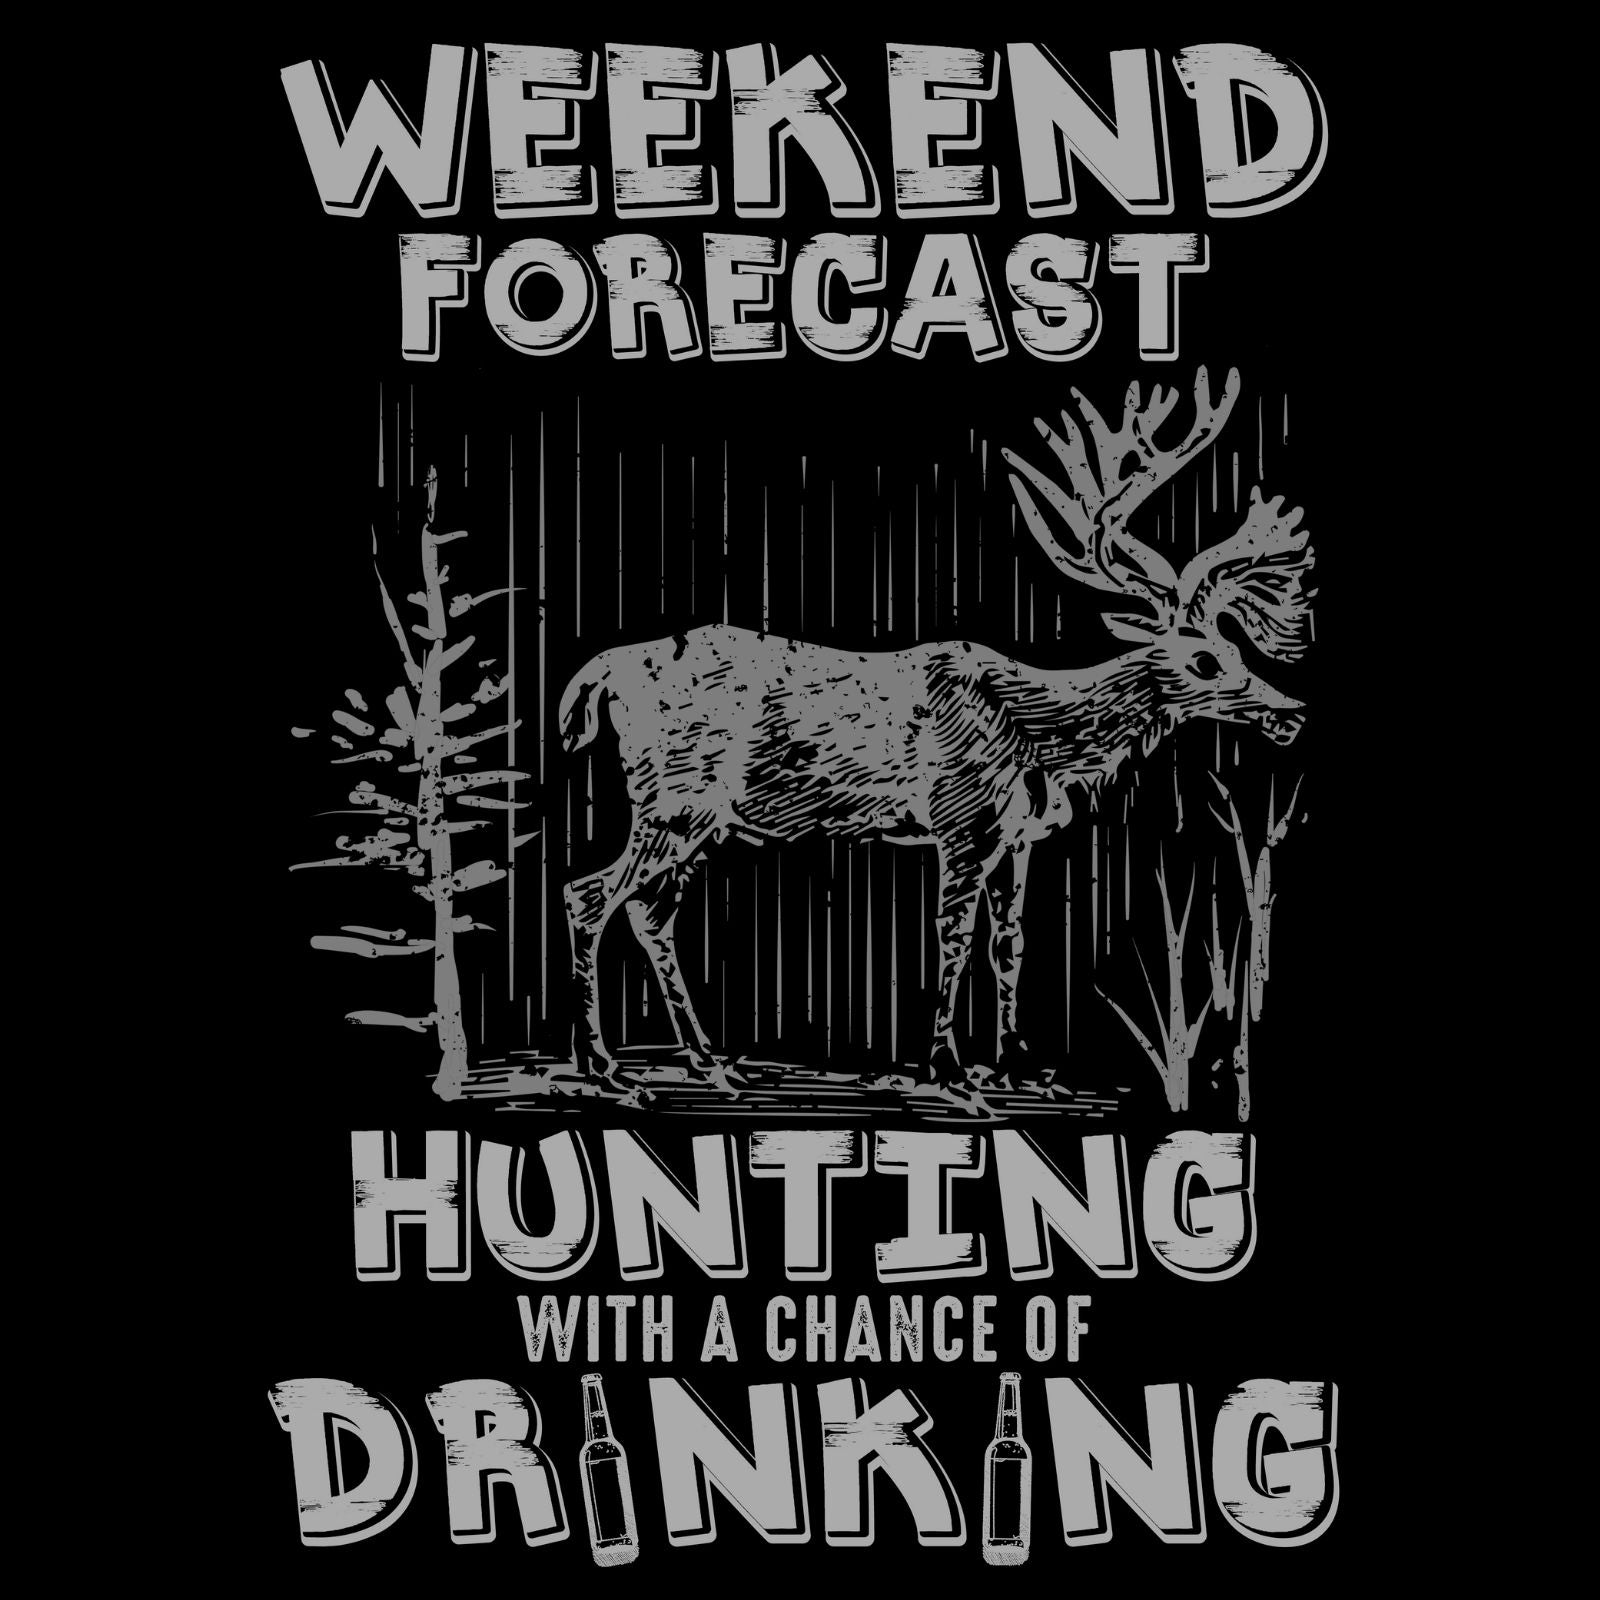 Weekend Forecast Hunting With A Chance Of Drinking - Bastard Graphics